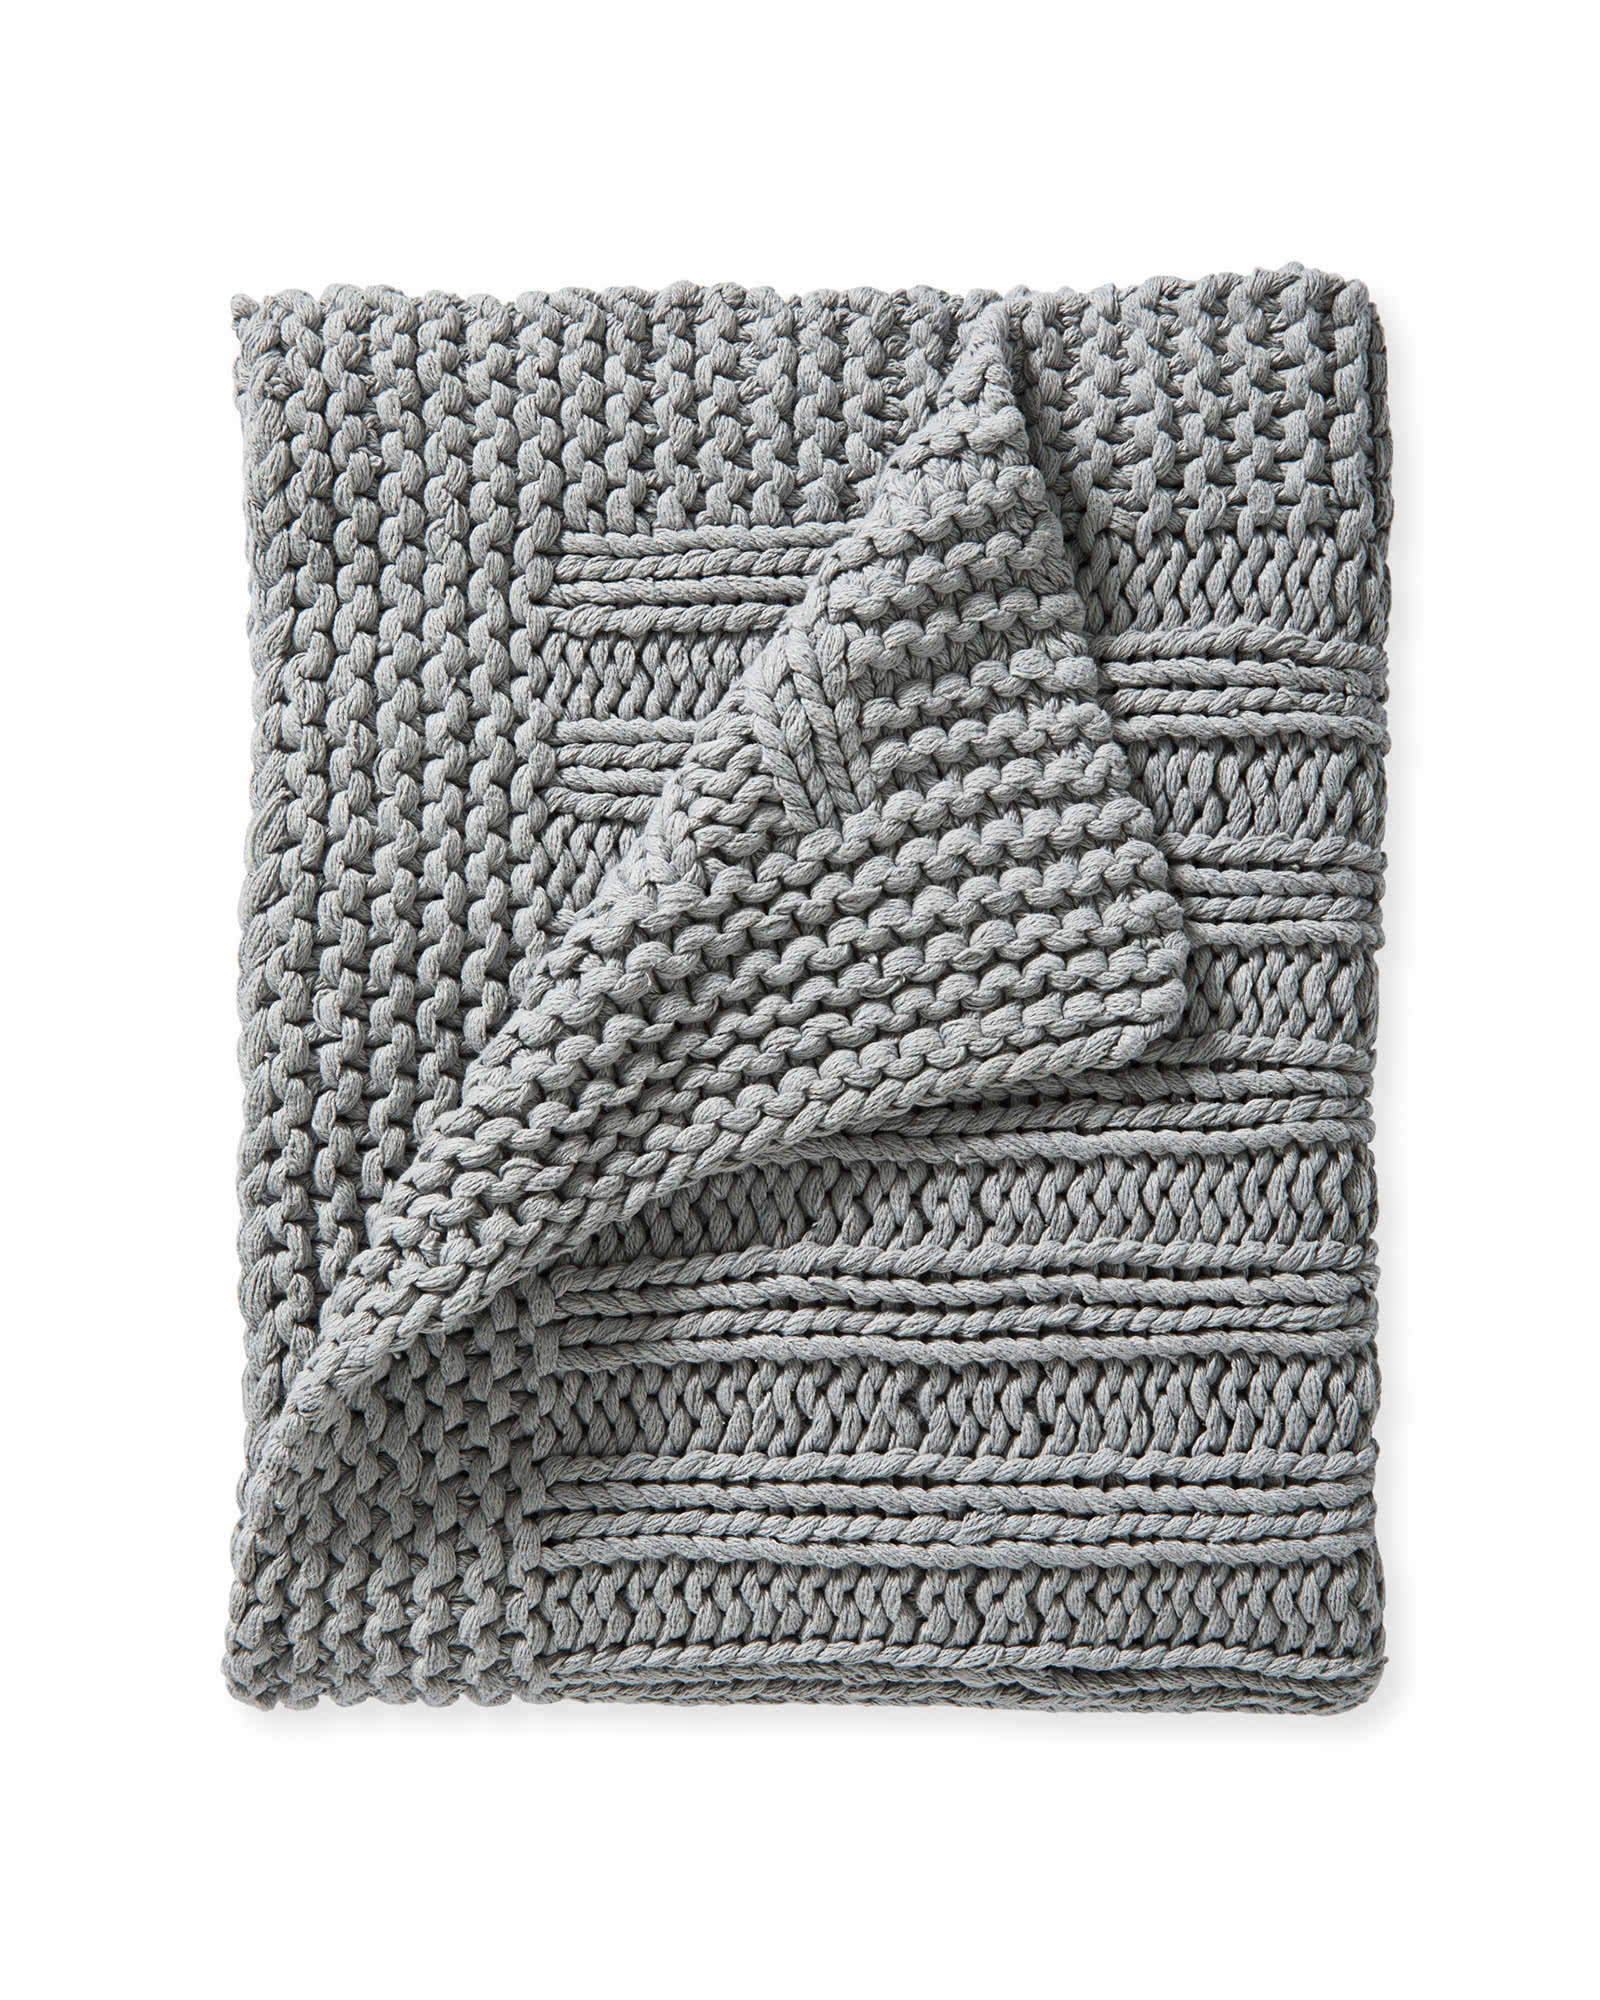 Sequoia Cotton Throw, Smoke